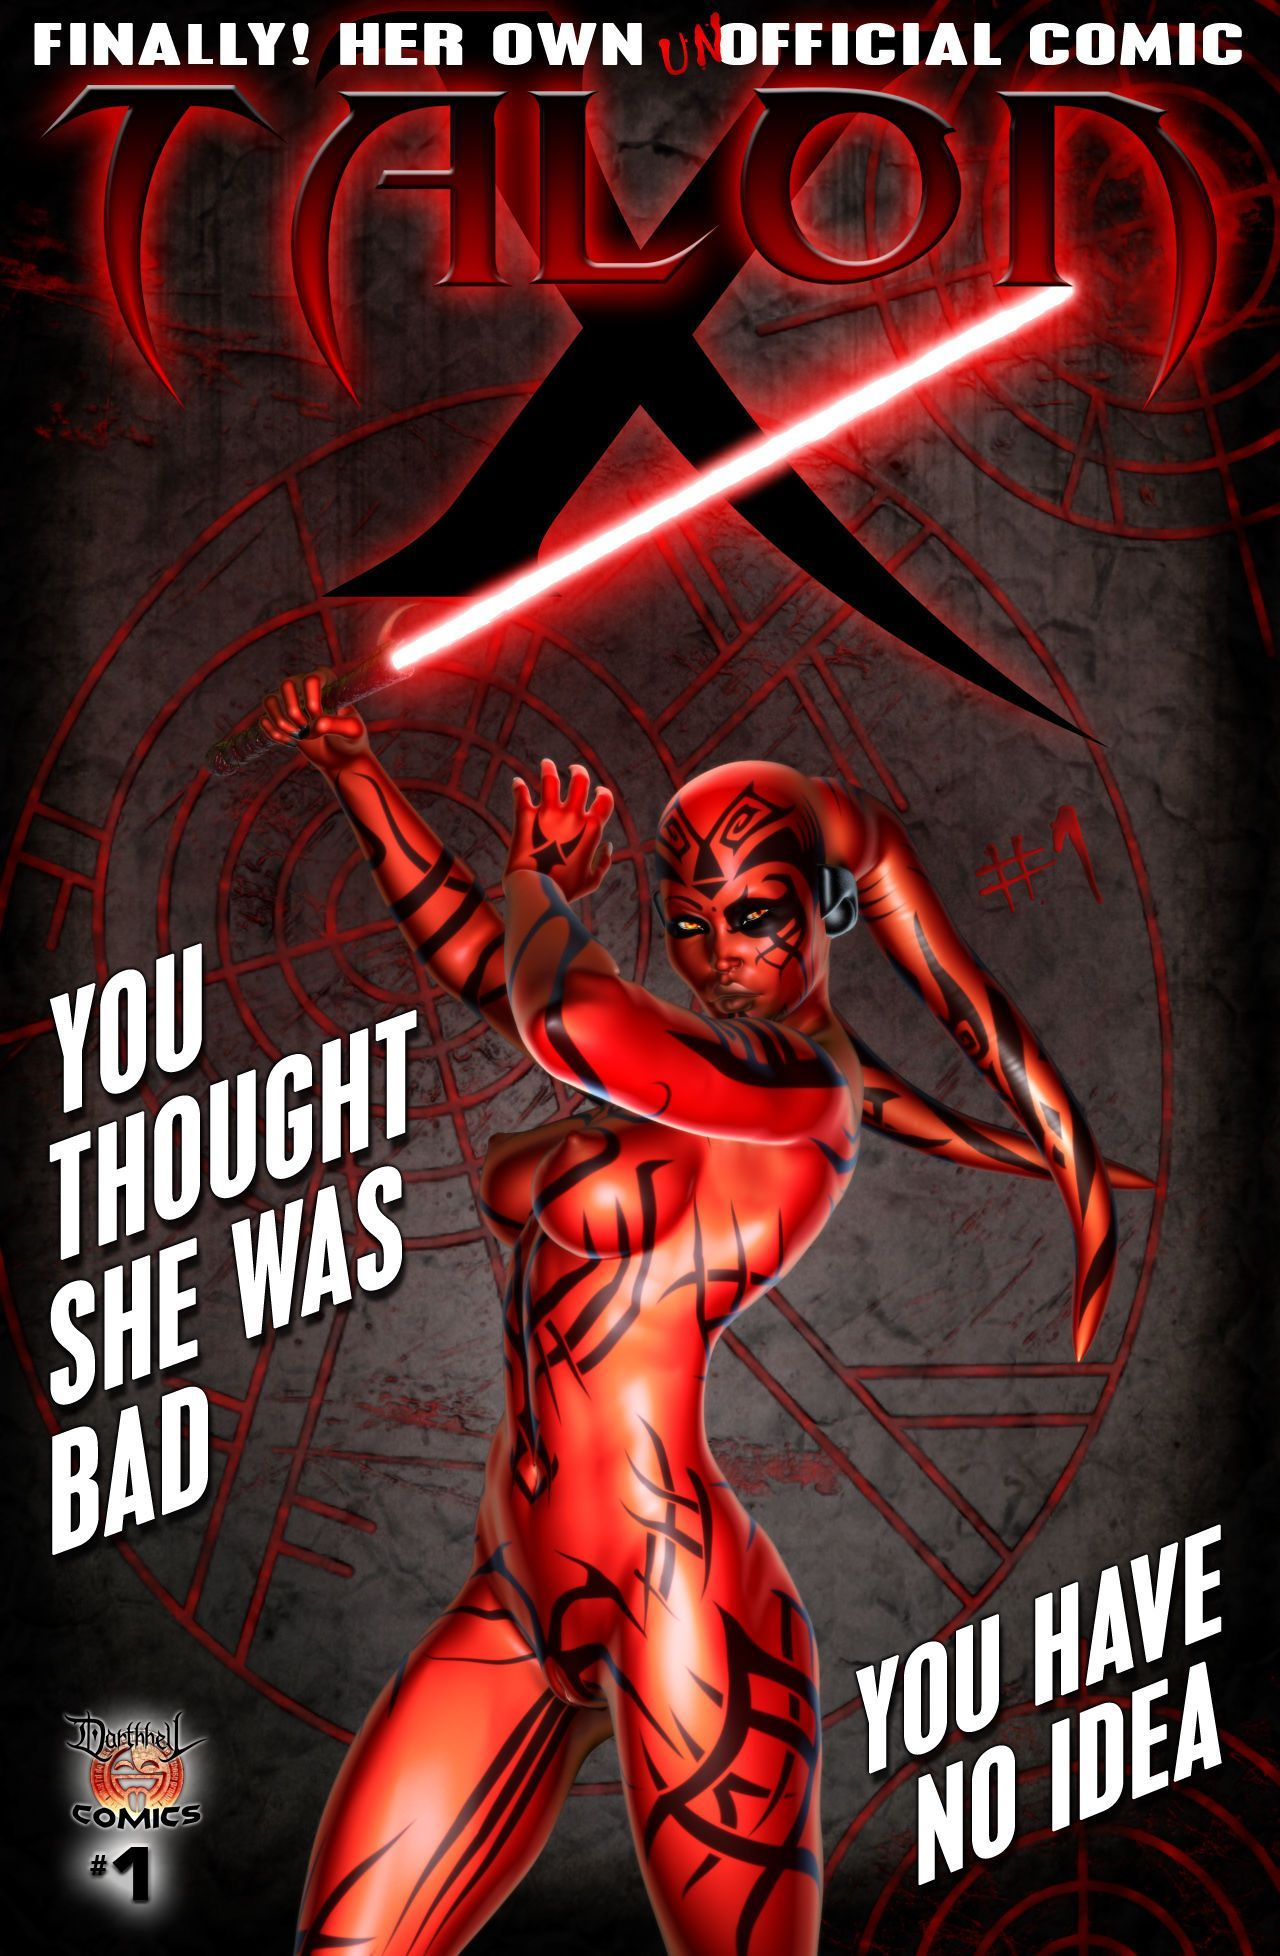 [darthhell] Talon X (Star Wars)